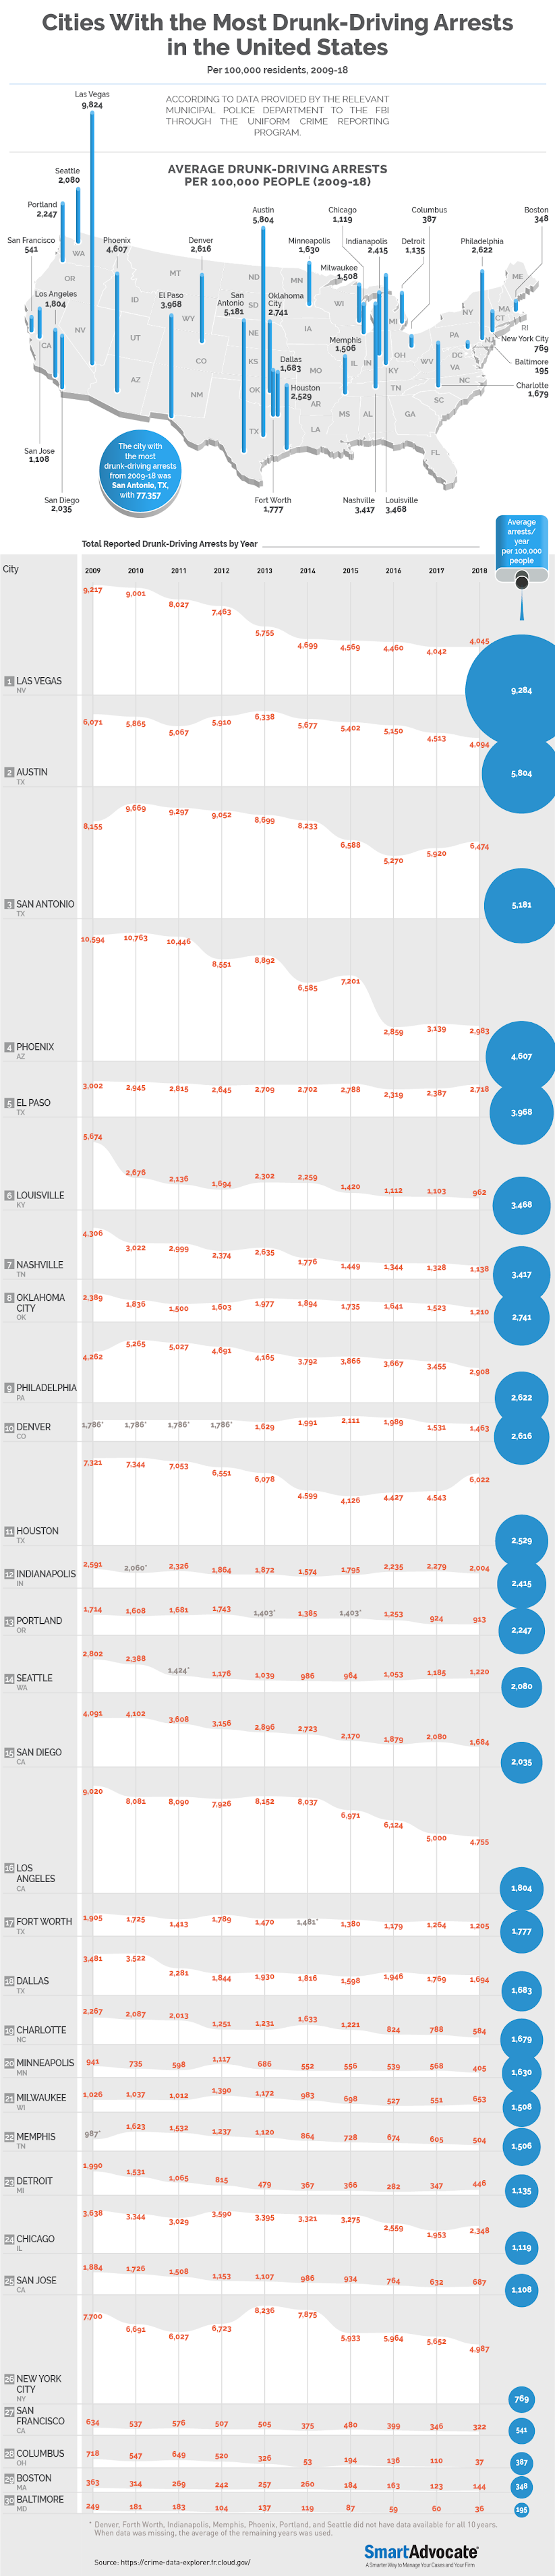 Cities With the Most Drunk-Driving Arrests in the United States #infographic